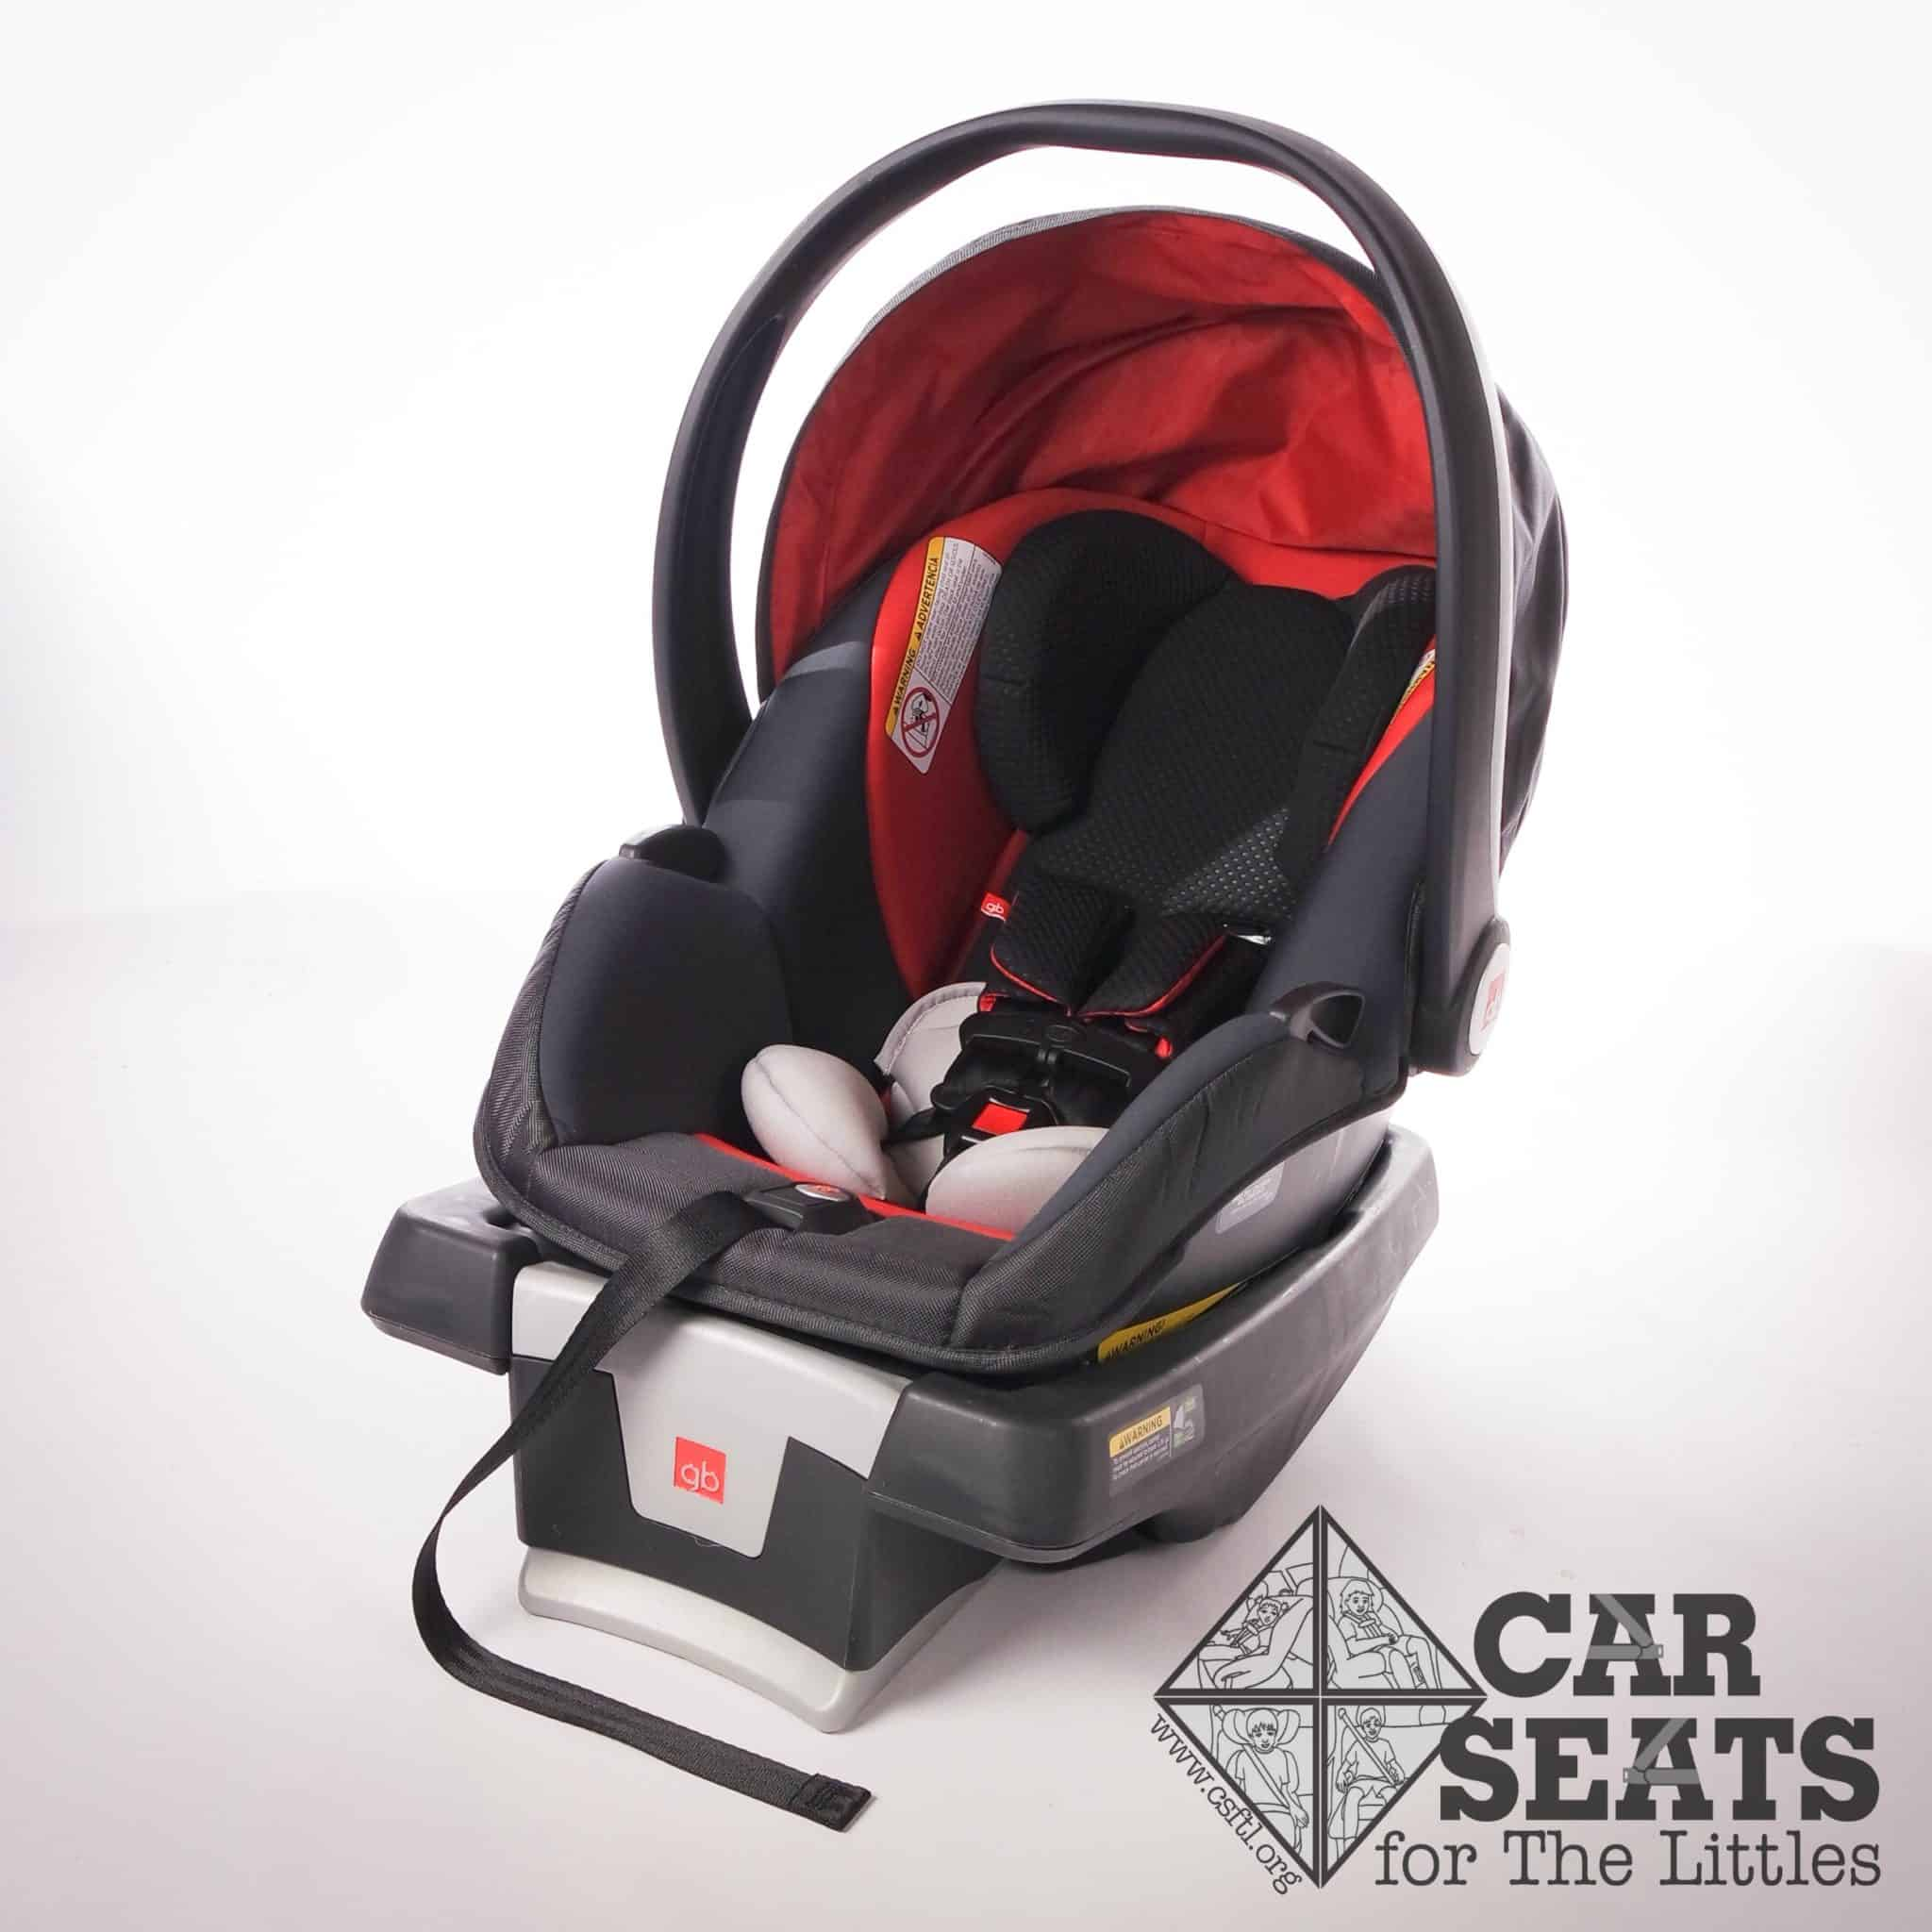 car seats for the littles gb asana 35 ap reviewgb asana 35 ap review car seats for the littles. Black Bedroom Furniture Sets. Home Design Ideas